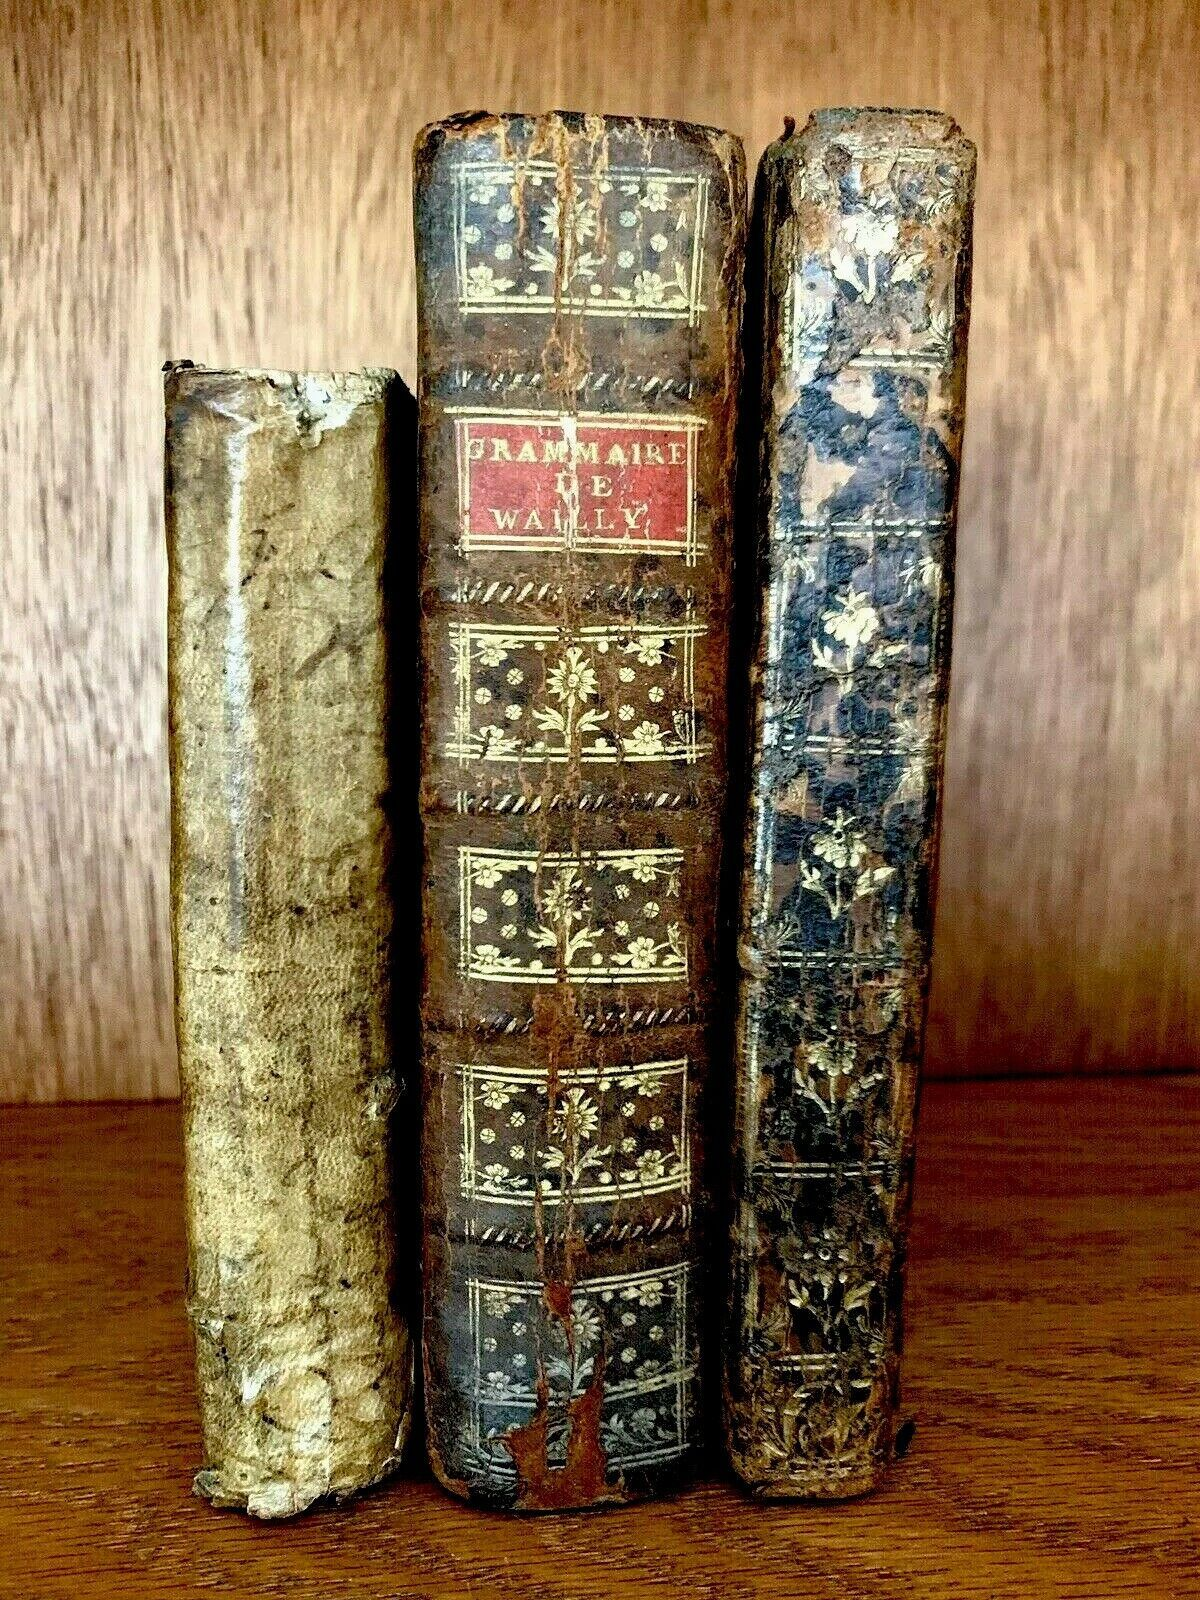 Forsale collection of old books 1700s rare collectible